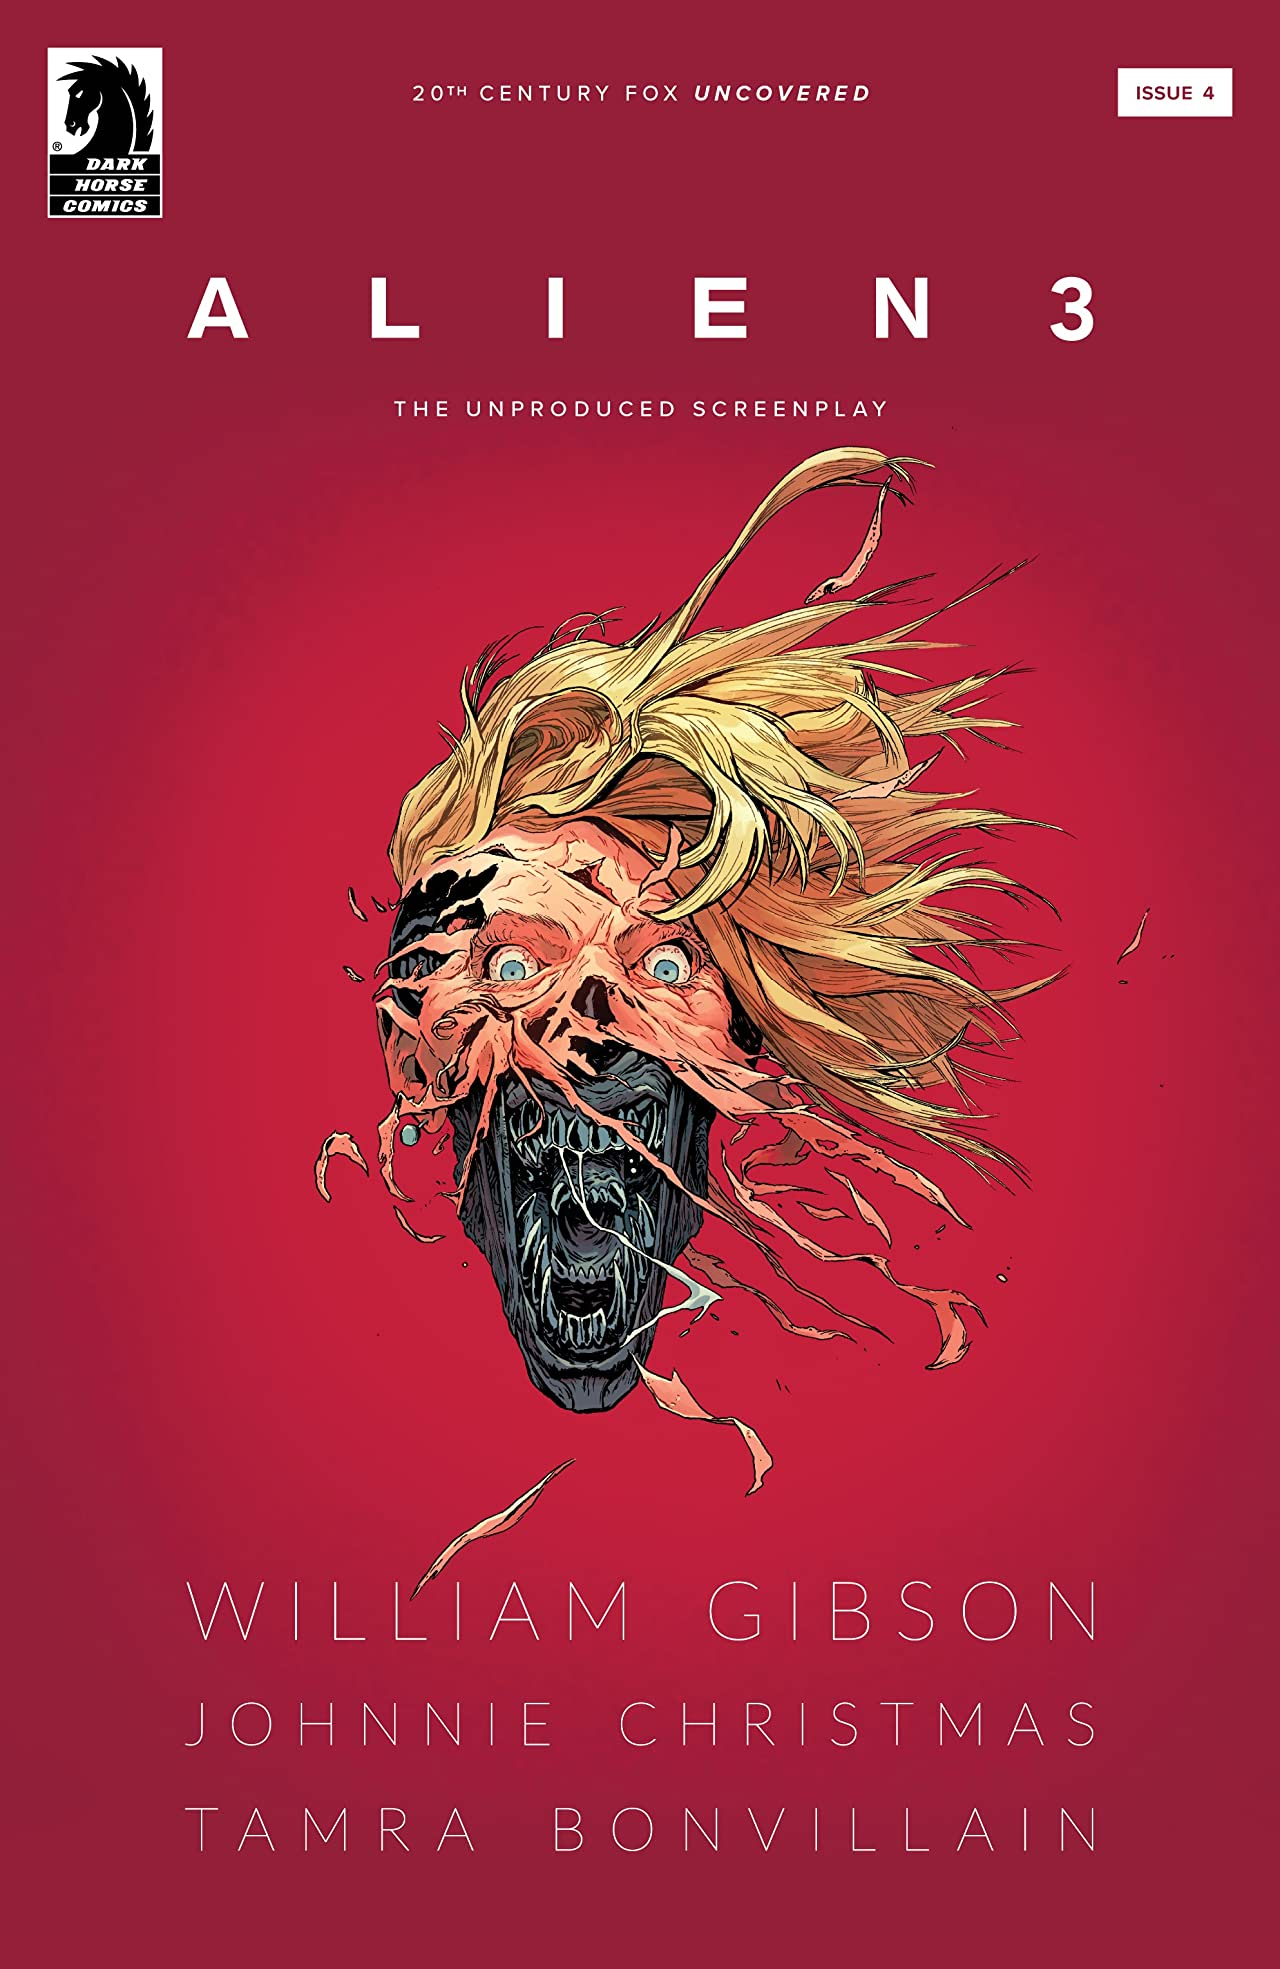 William Gibson's Alien 3 No.4